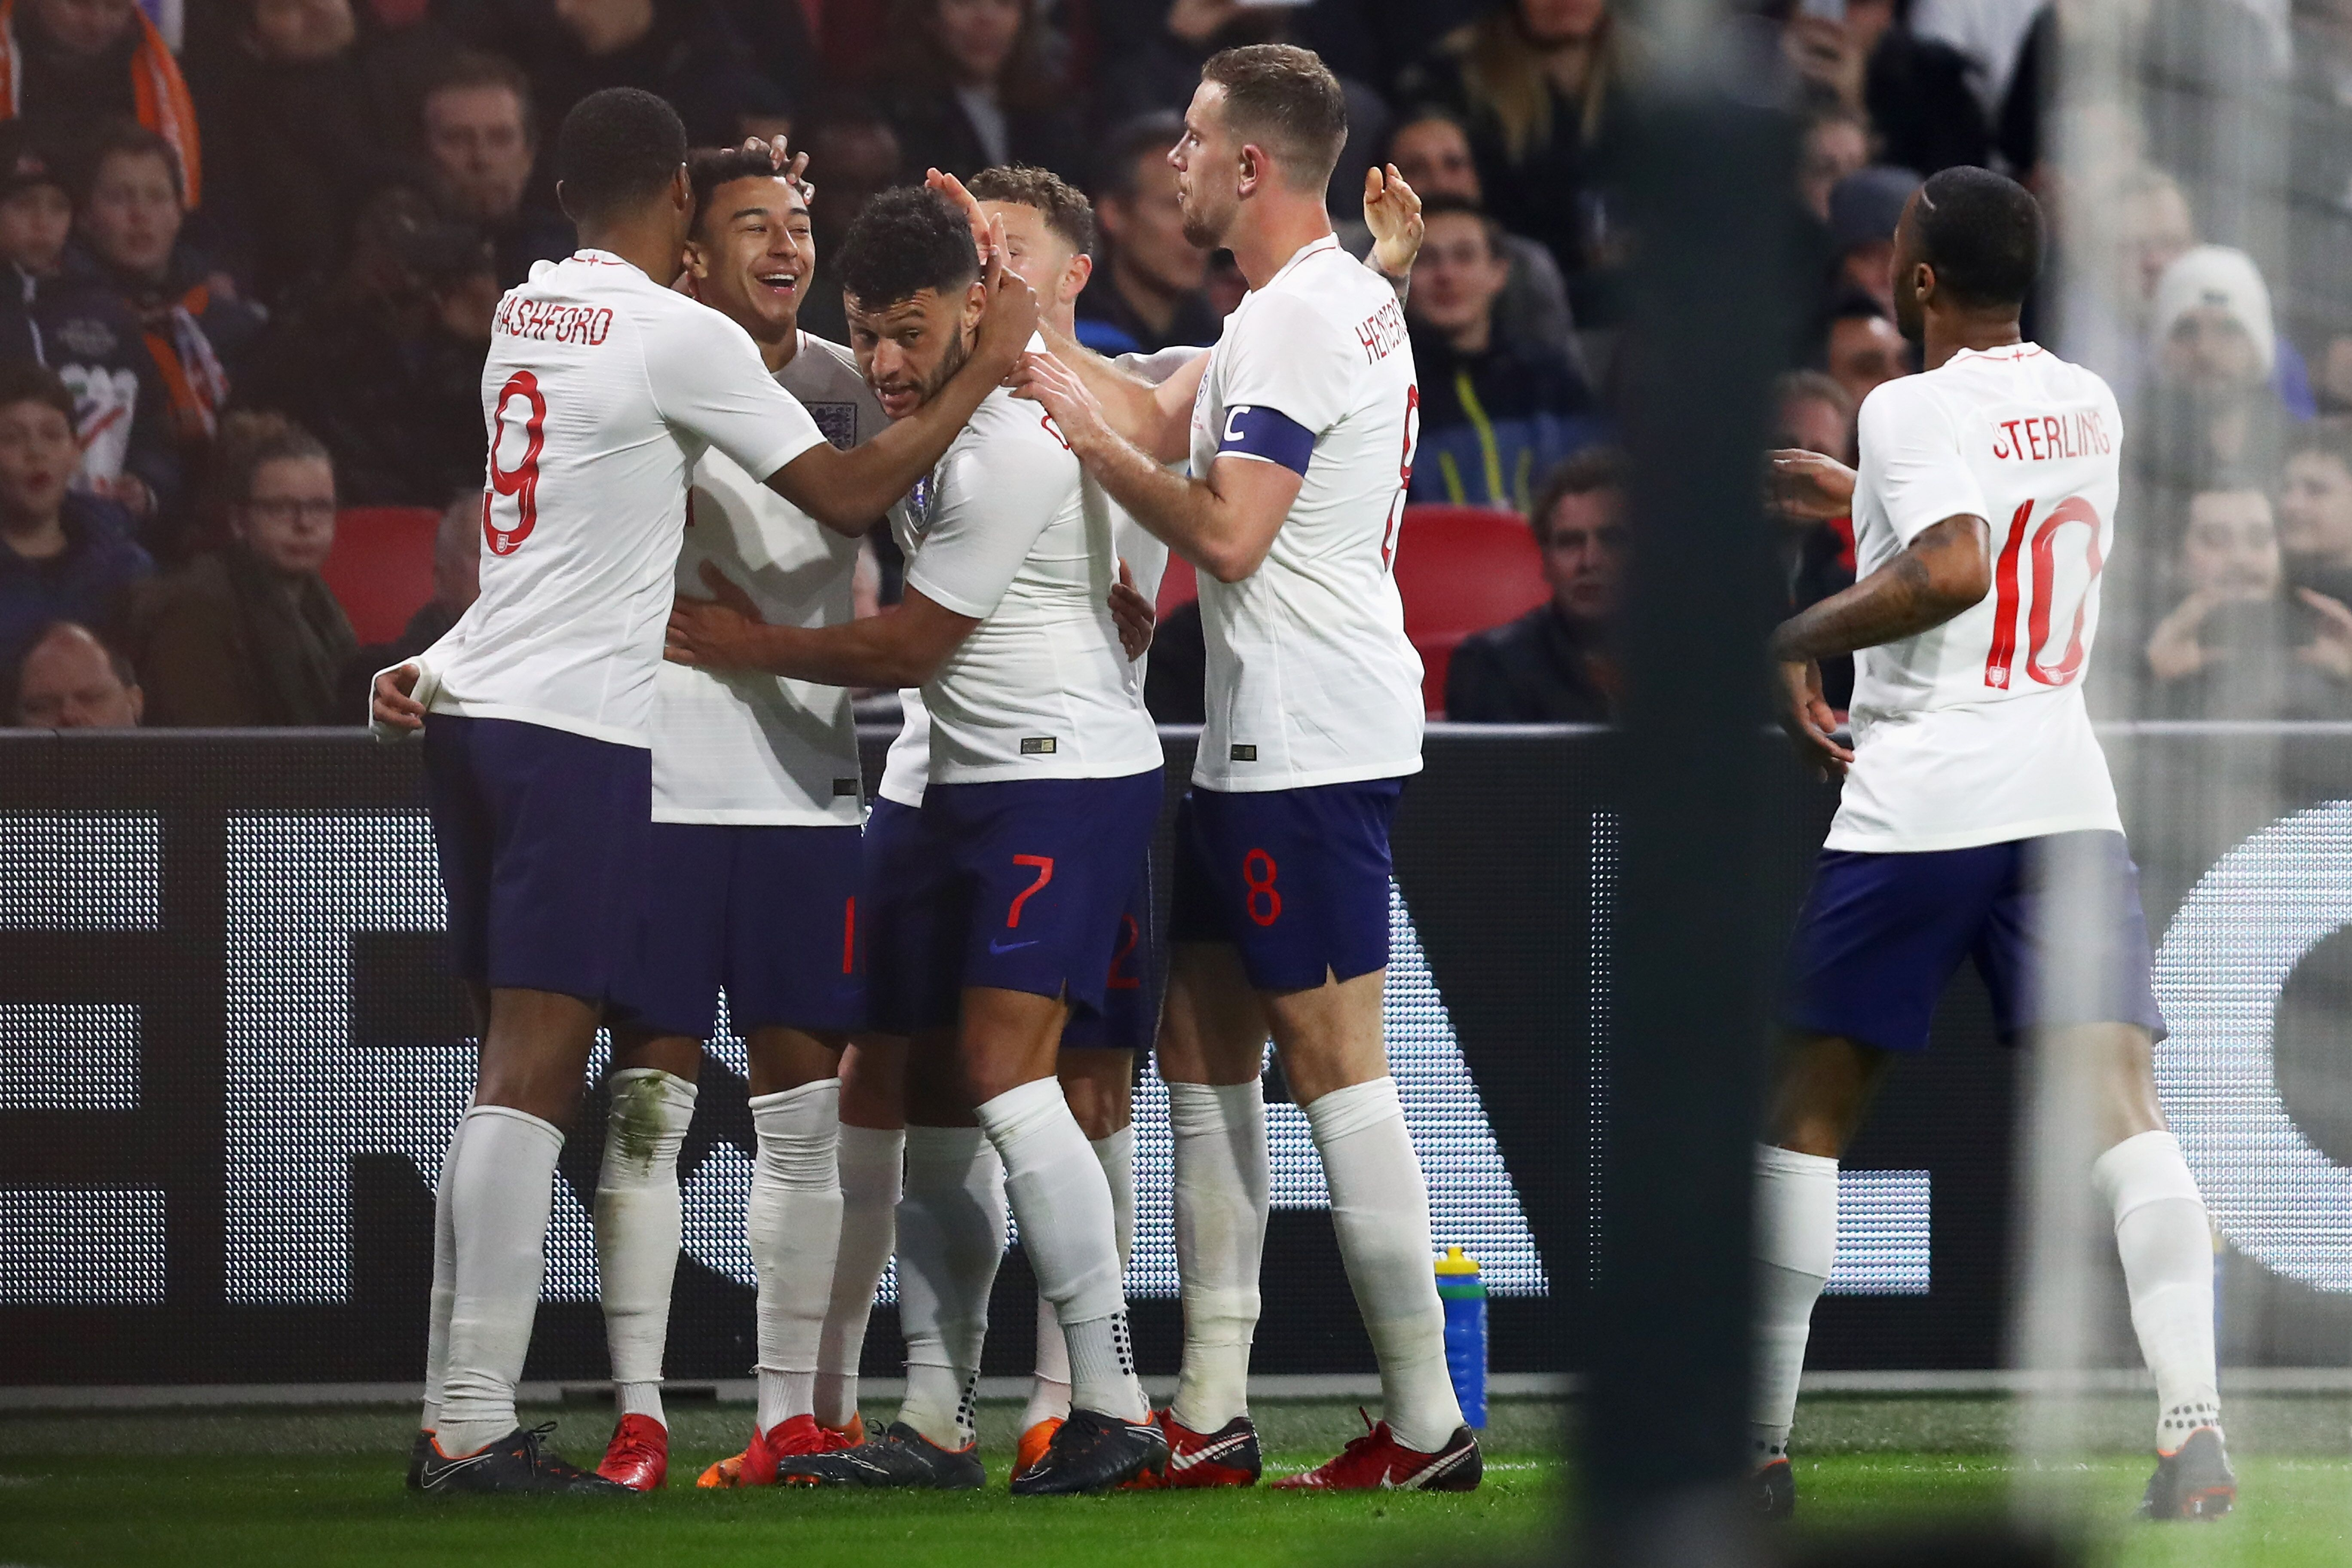 f9e4898e3bf Manchester United's Jesse Lingard scores winner in England's 1-0 victory  over Holland!